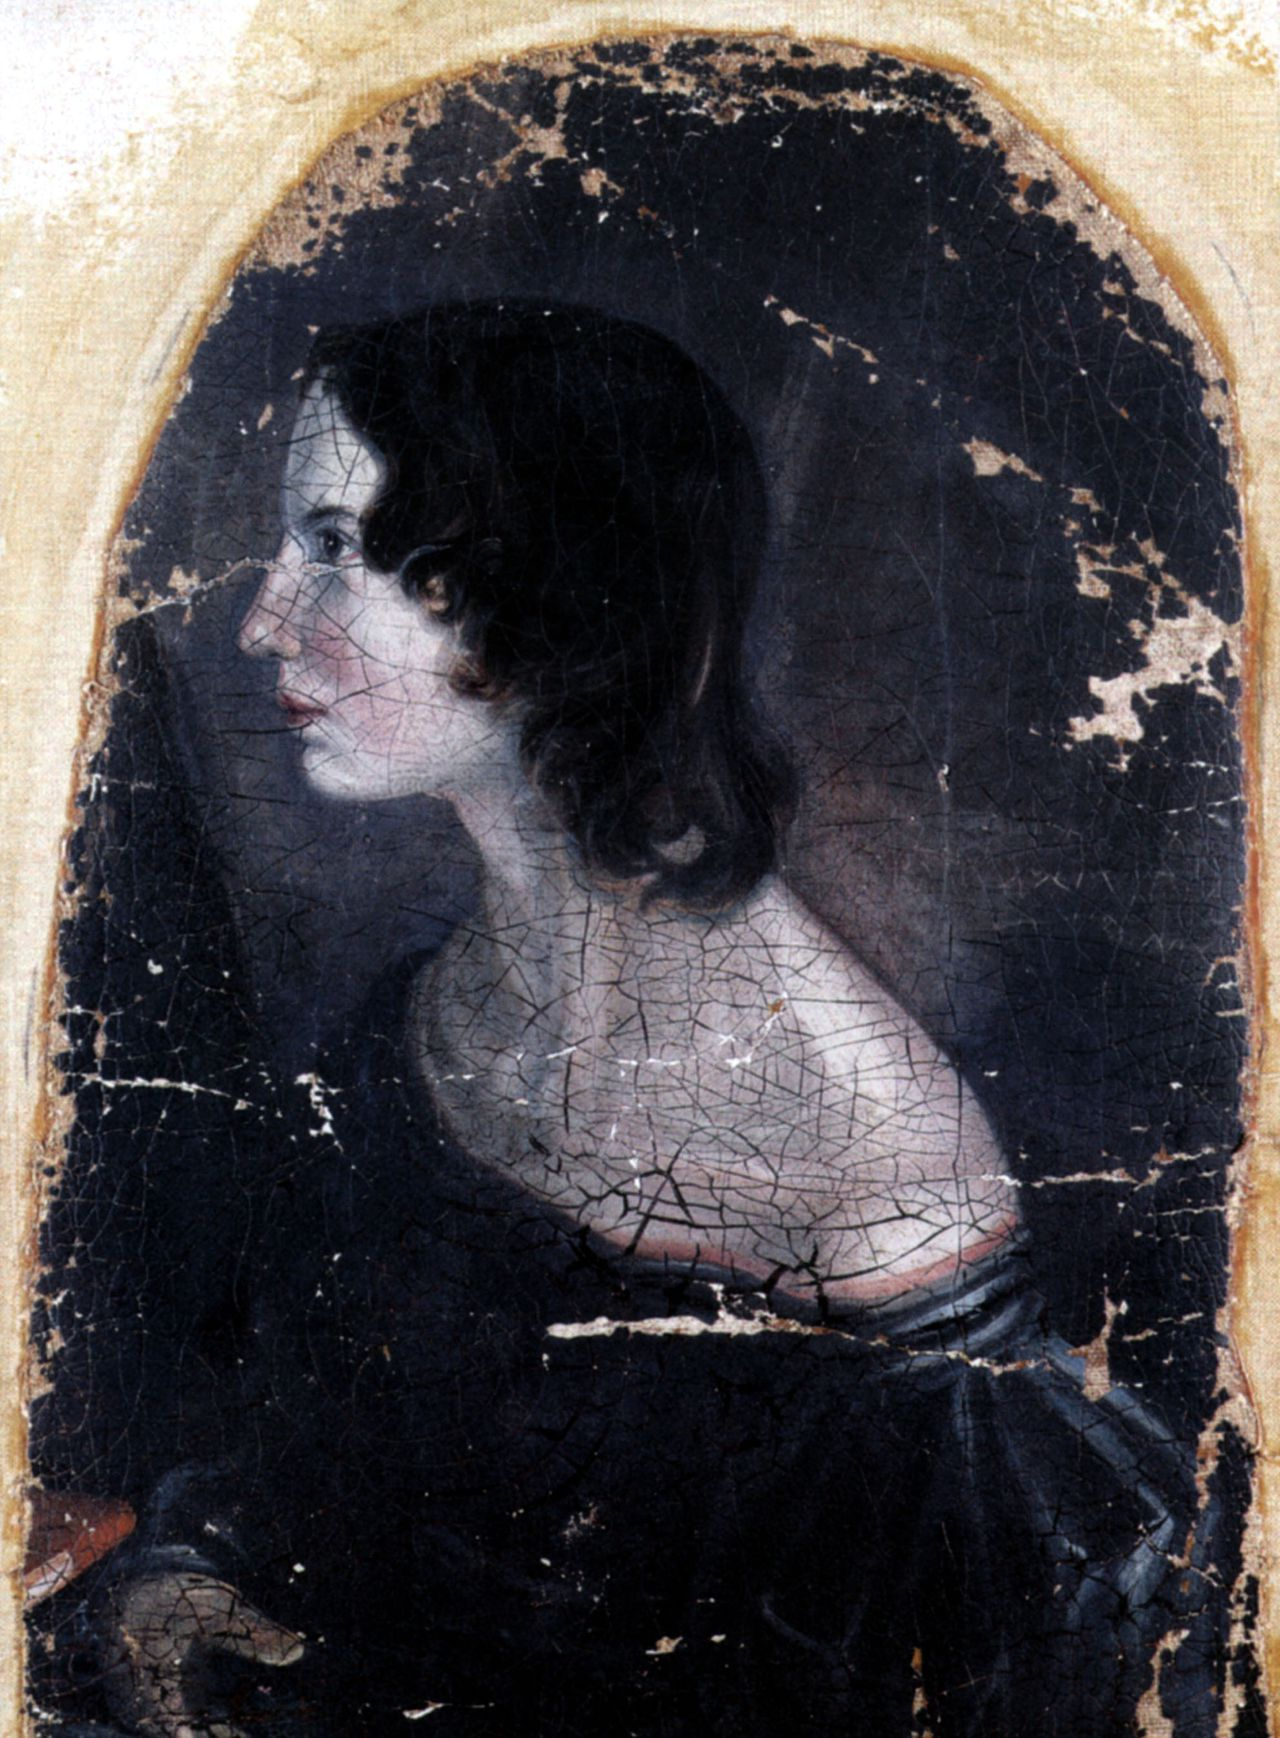 UNSPECIFIED - OCTOBER 20: Emily Bronte (1818-1848) english novelist painting by Patrick Branwell Bronte c. 1833 (Photo by Apic/Getty Images)